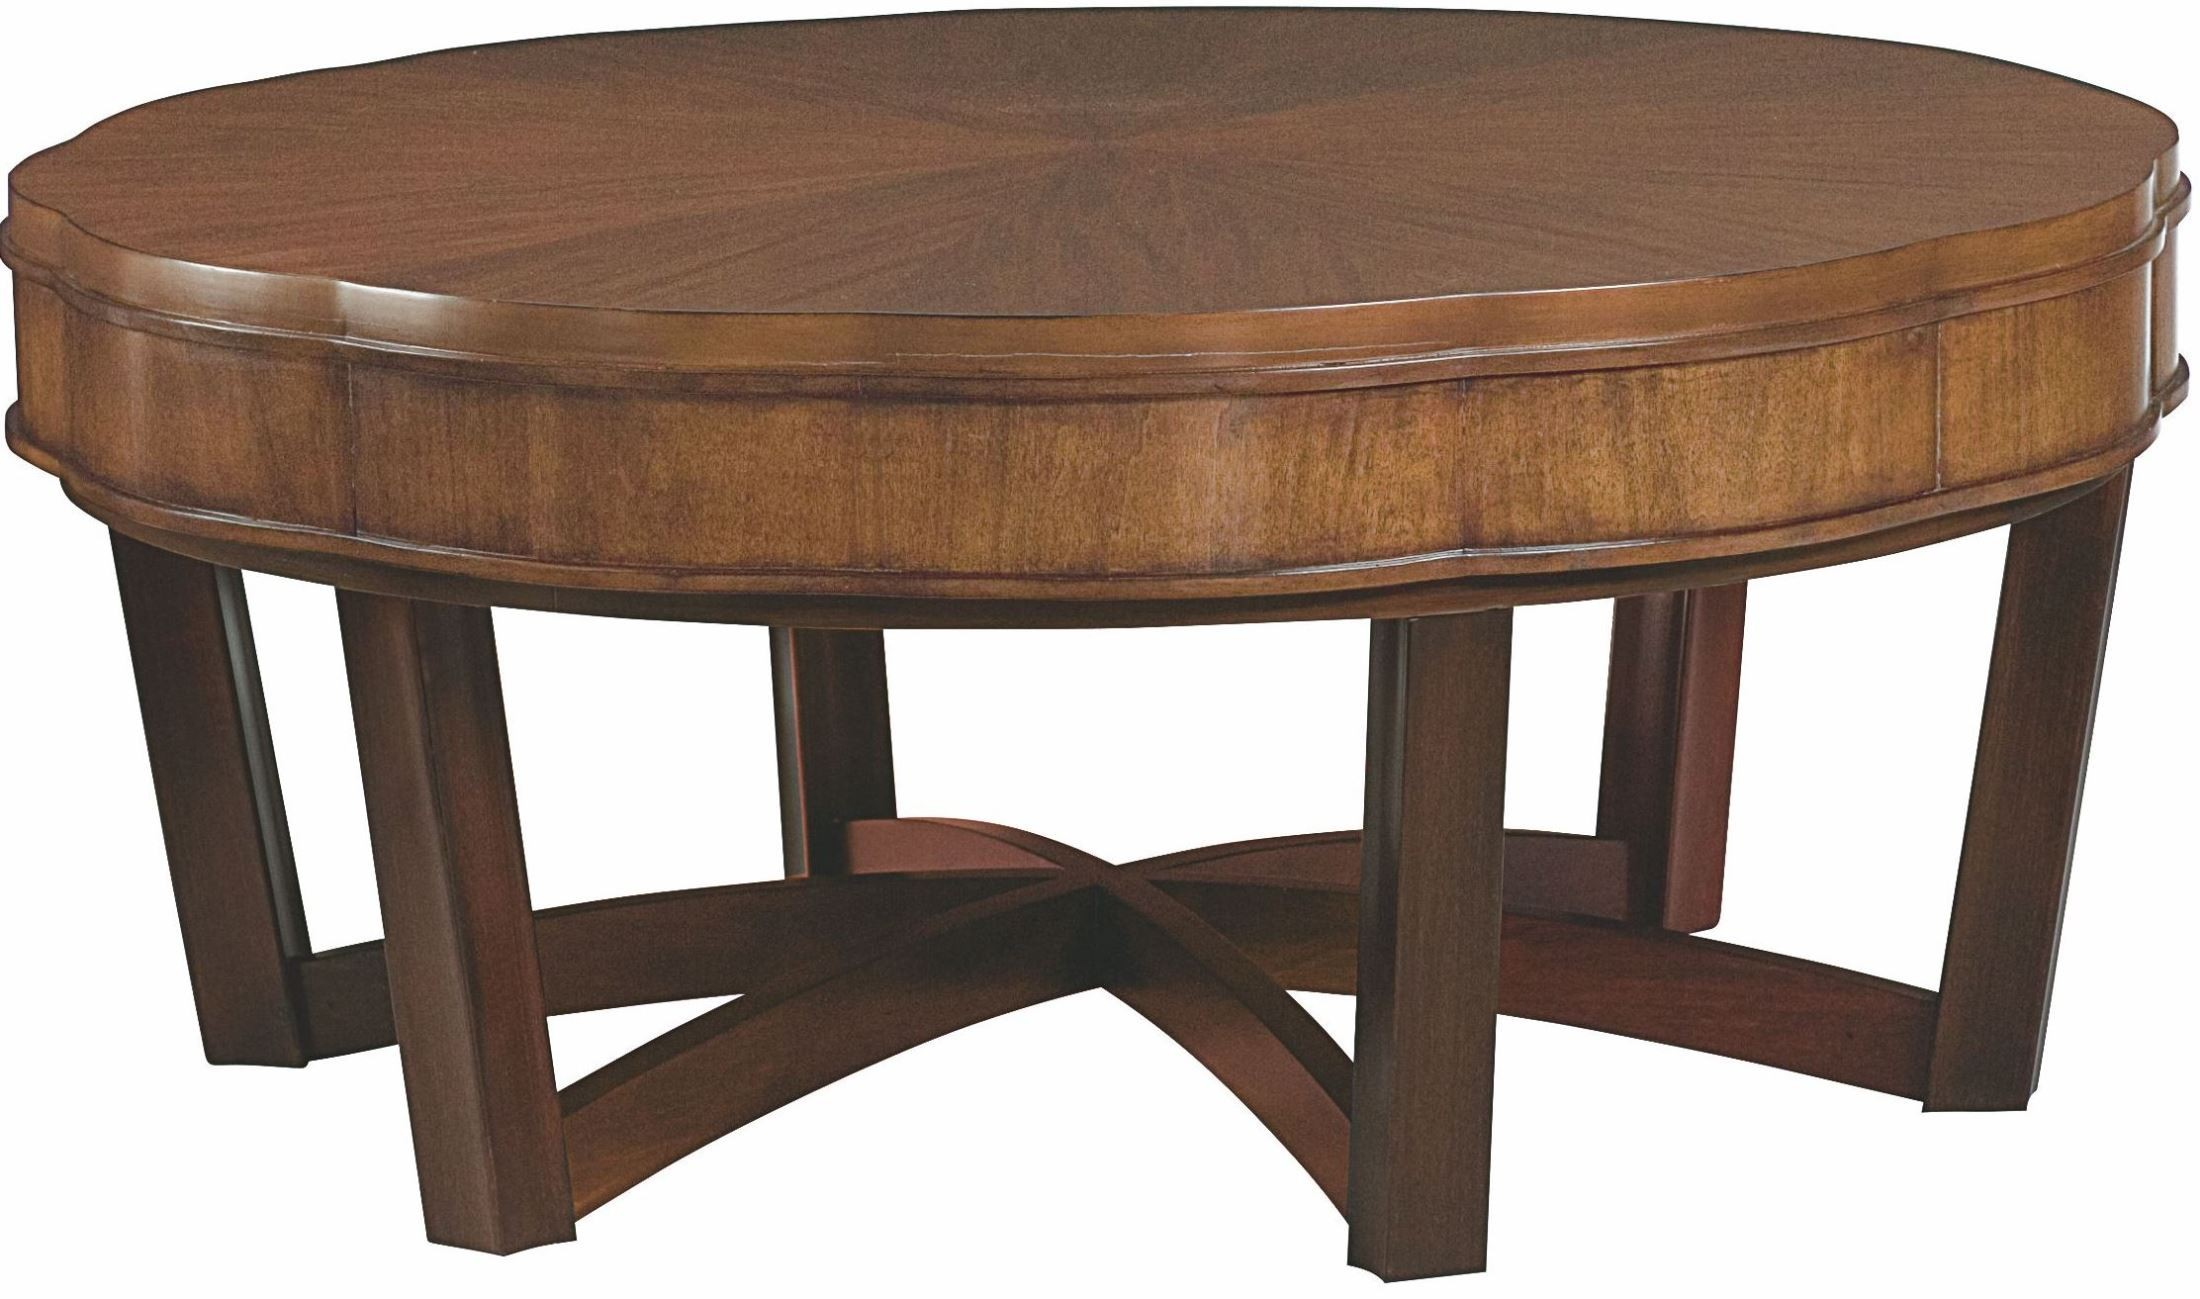 Miramar smoky brown round cocktail table from hammary 218 for Cocktail 911